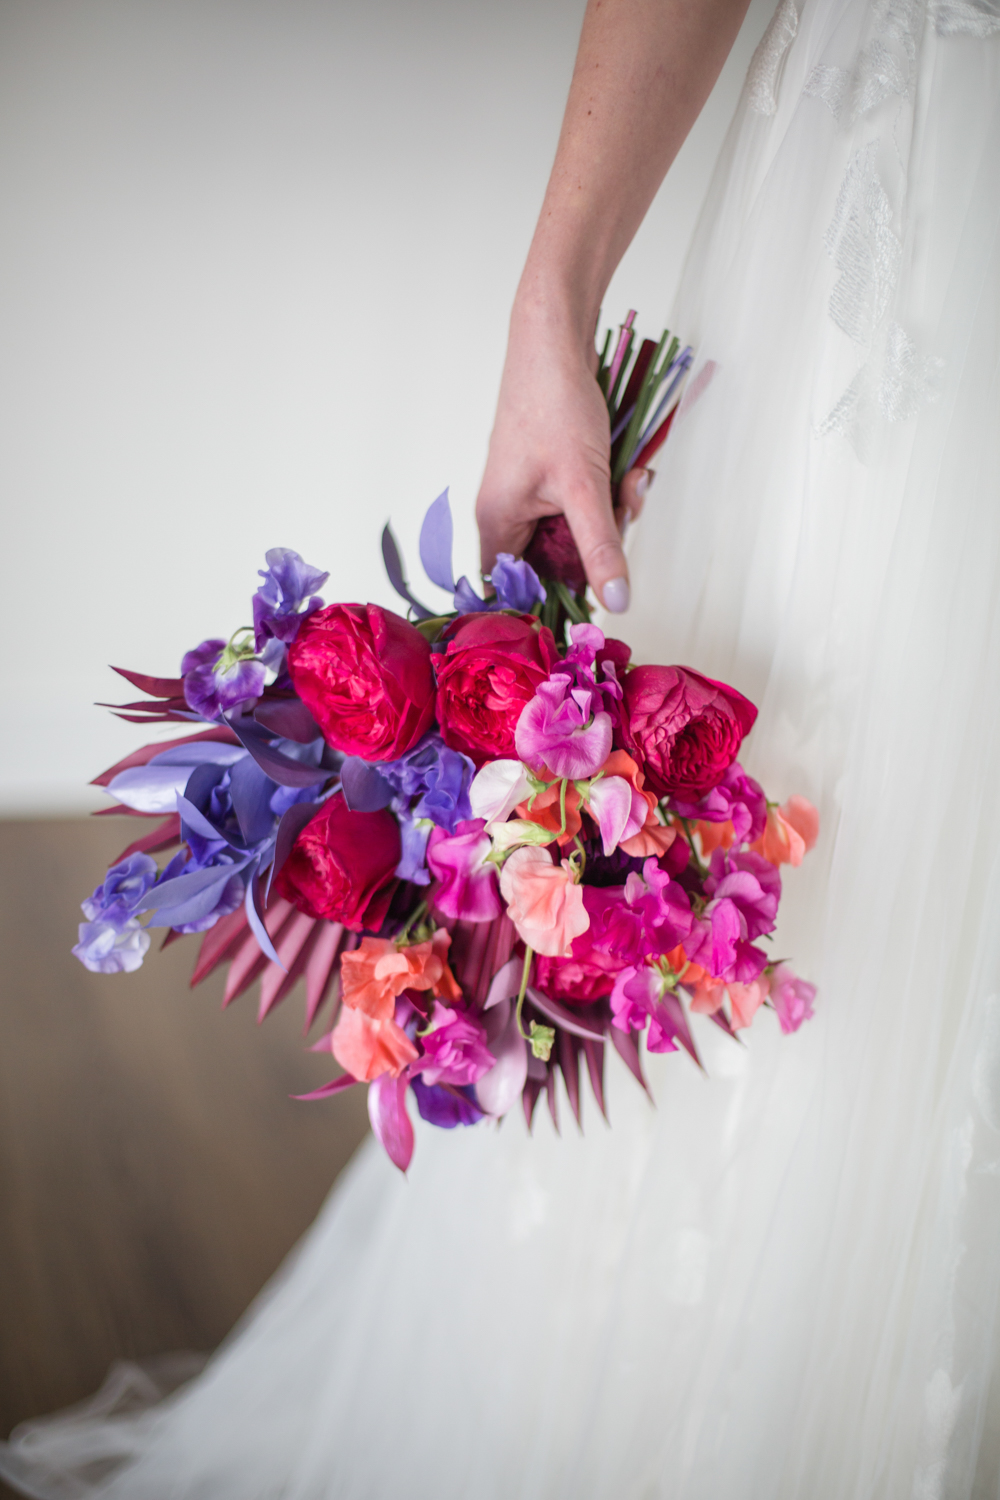 The wedding bouquet was super bright, with bold blooms and bright dried elements